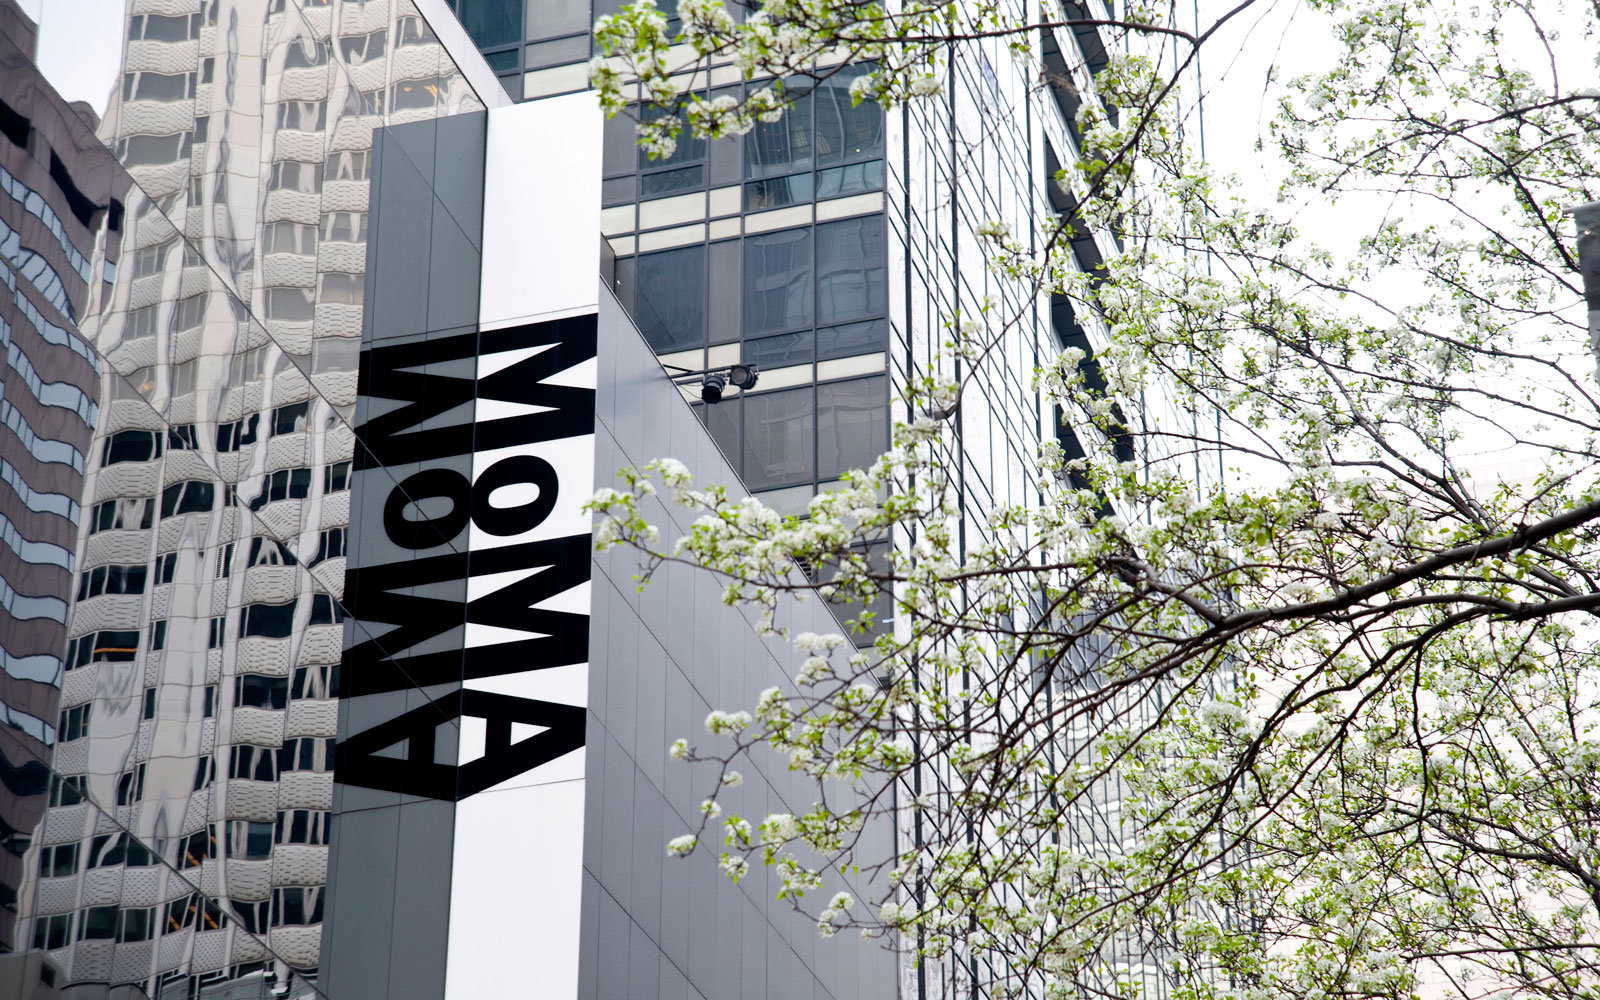 9.The Museum of Modern Art (MoMA) in New York City